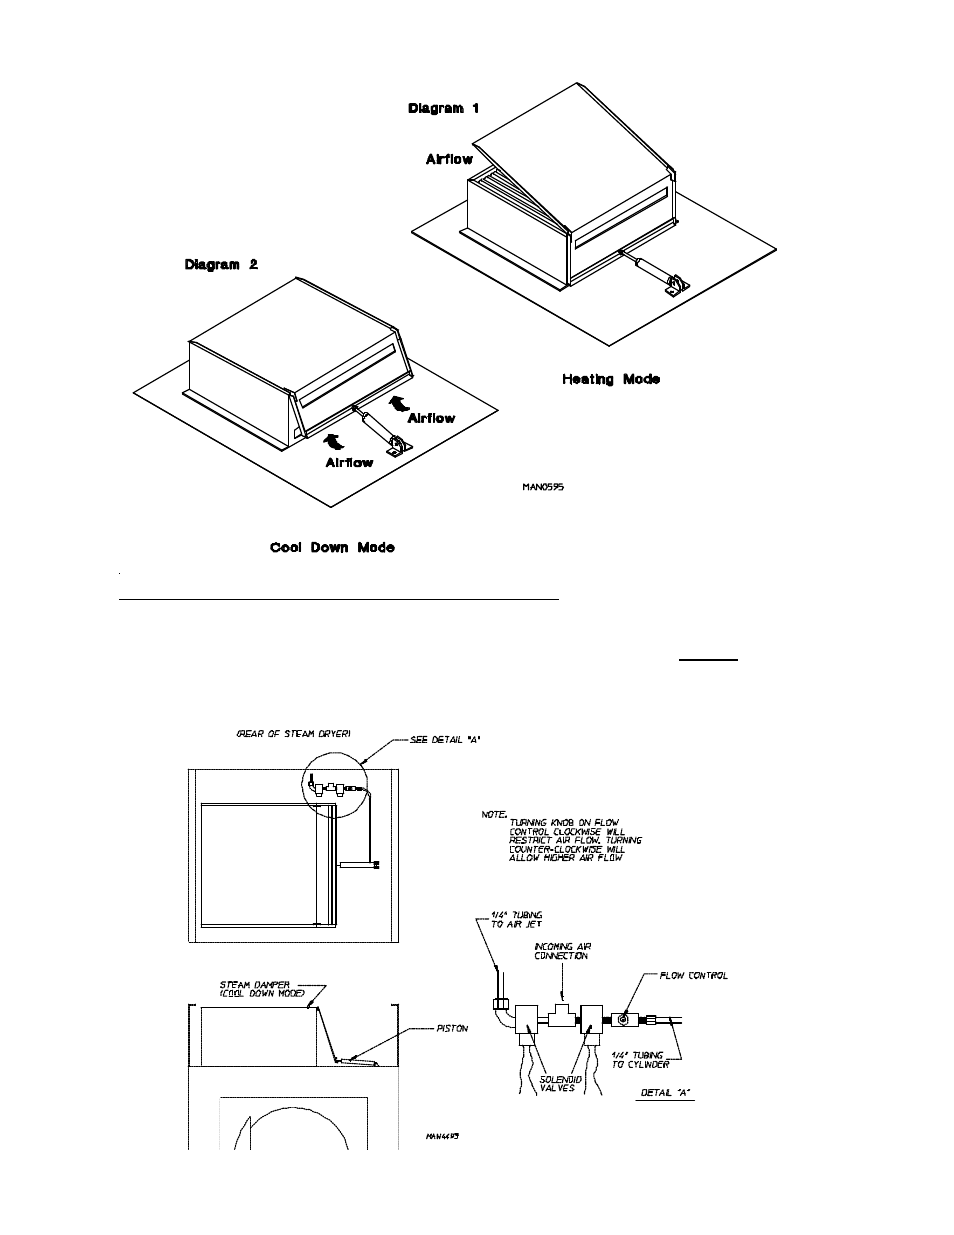 American Dryer Corp Ml 122d User Manual Page 34 55 Air Flow Control Valve Schematic